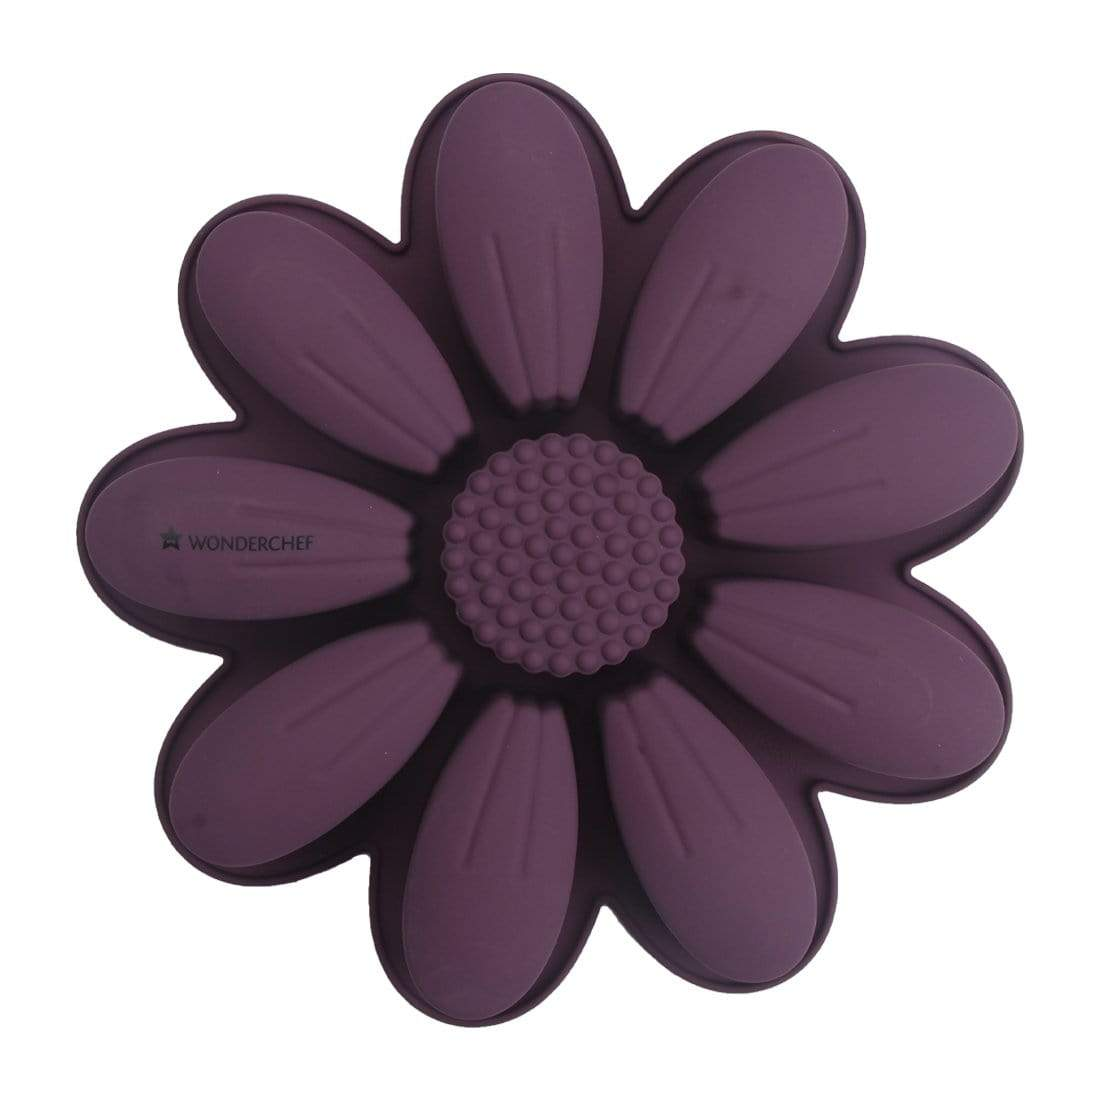 Platinum Silicone Daisy Cake Moulds, Novel Shapes